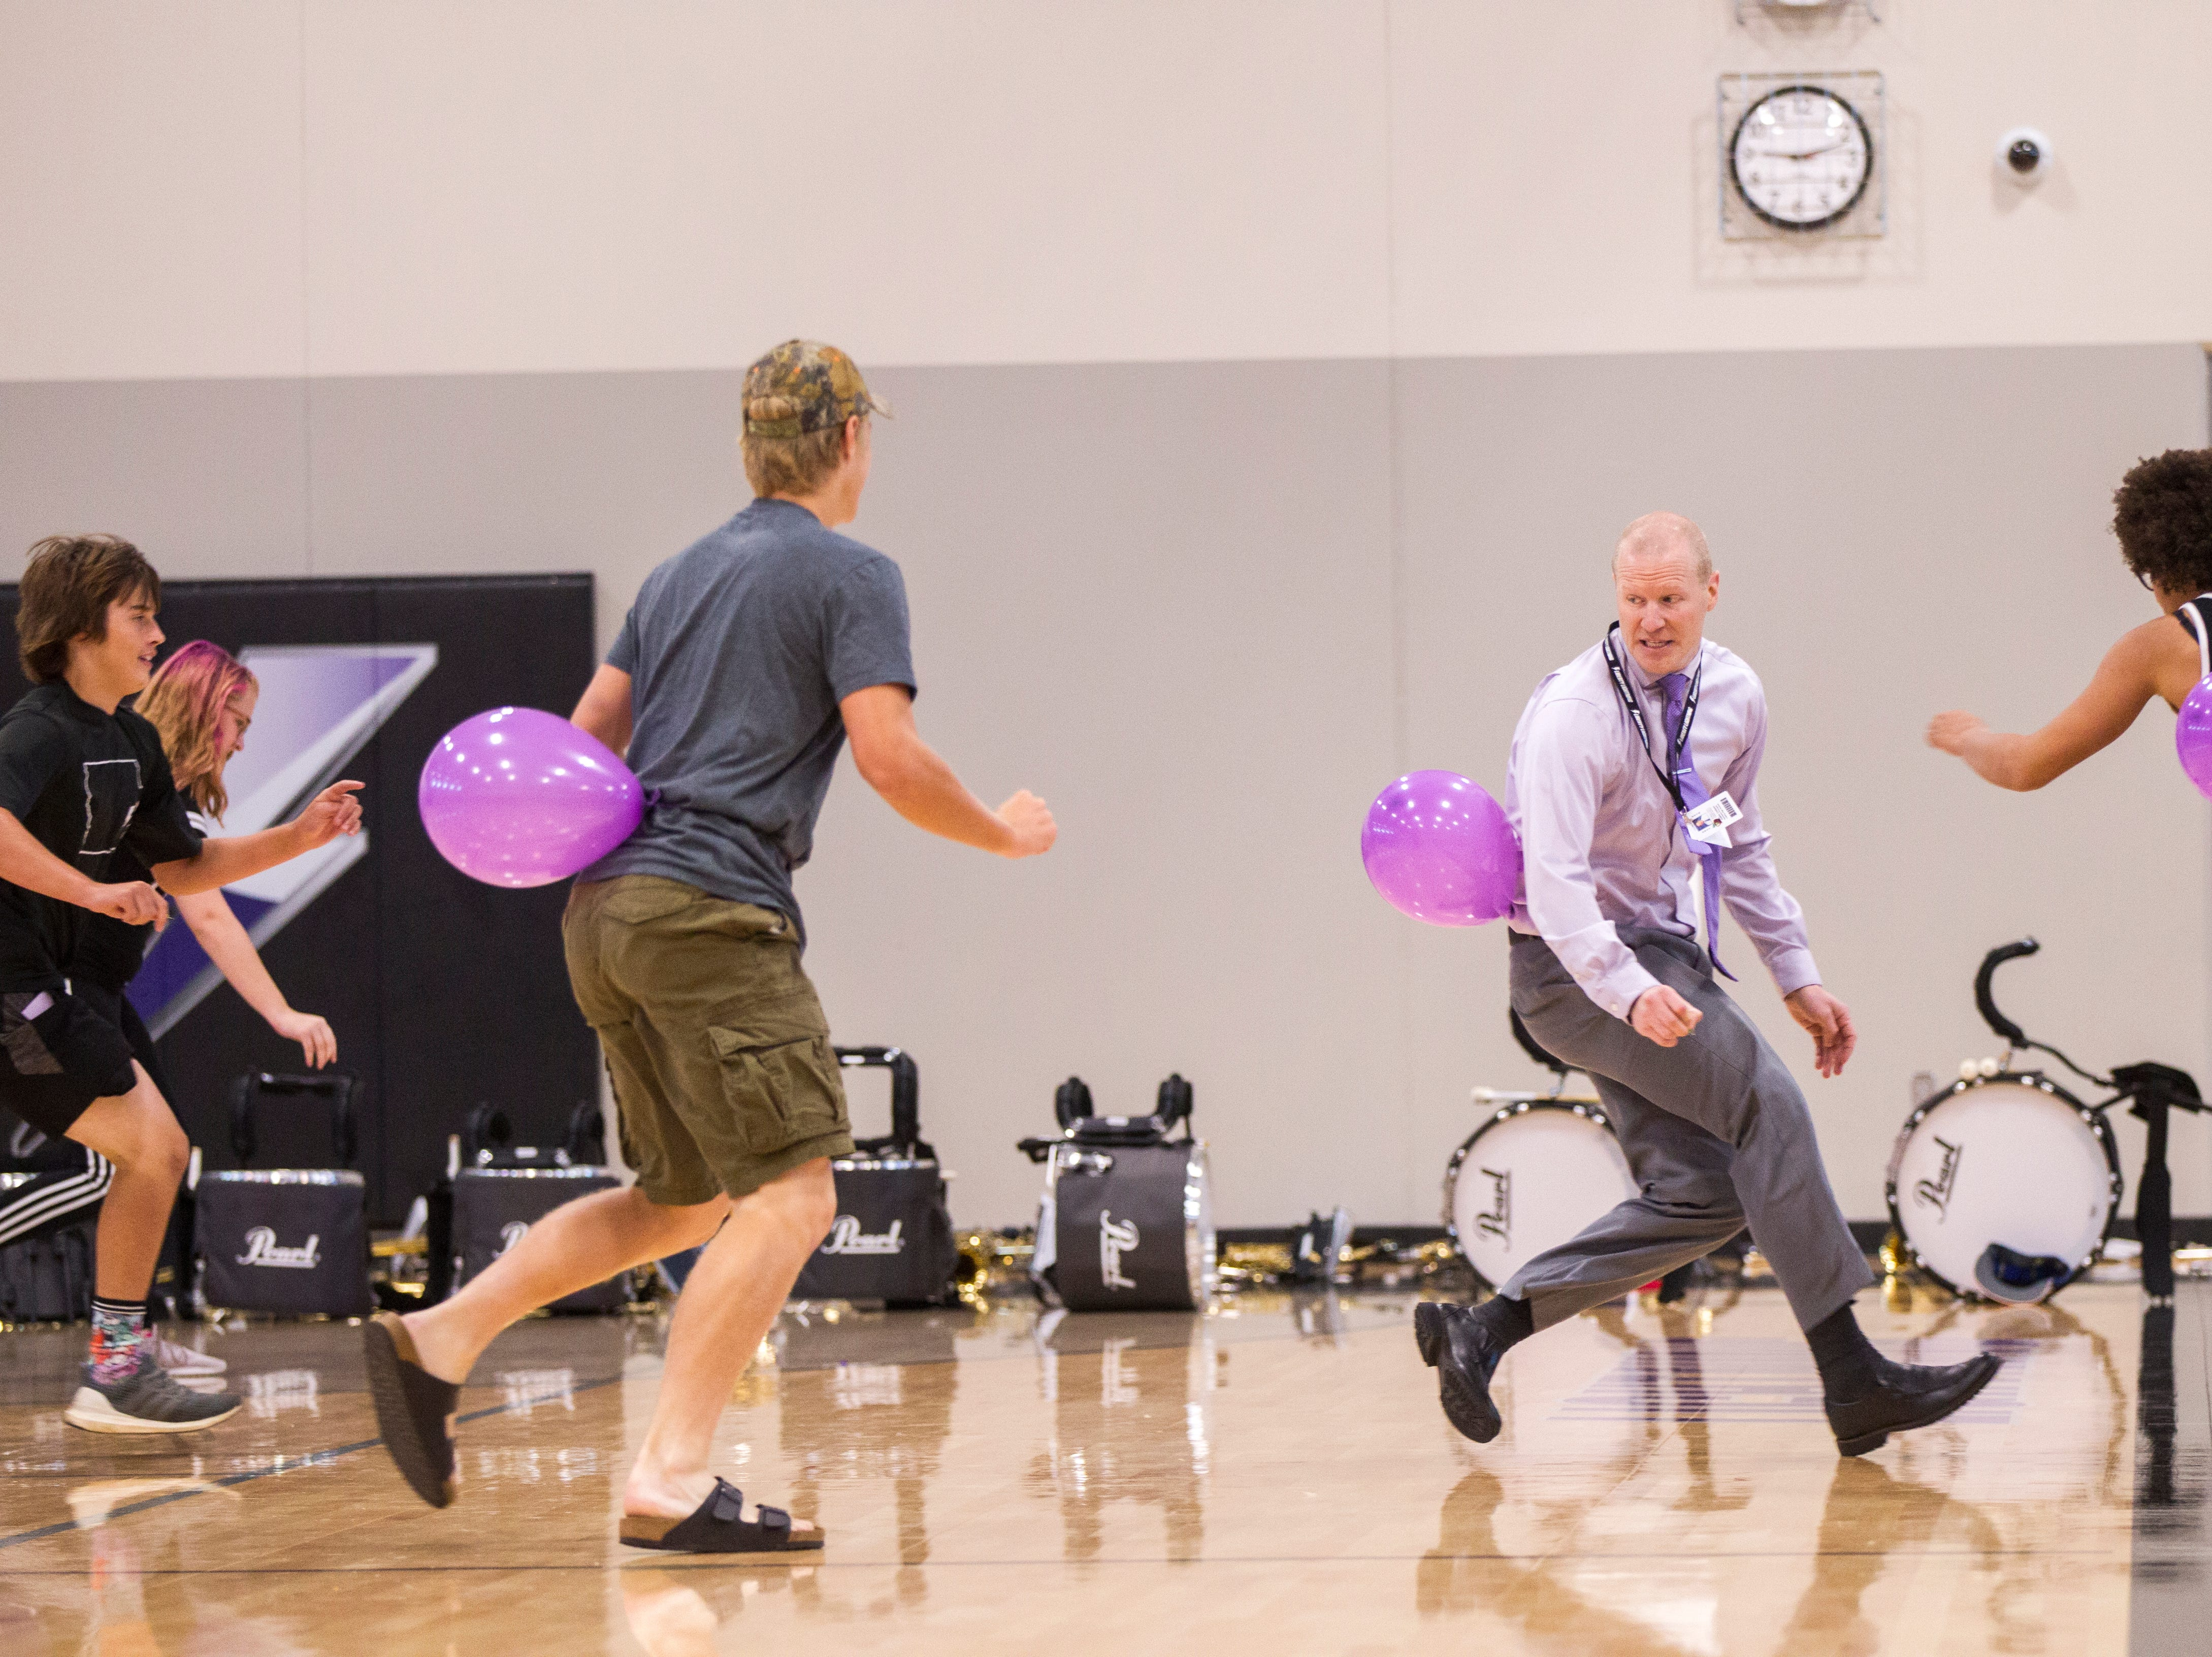 Justin Colbert, Liberty assistant principal, attempts to avoid getting his balloon popped by students while playing a game during a first day of school assembly on Thursday, Aug. 23, 2018, at Liberty High in North Liberty. Colbert played football at Drake from 2004-07.